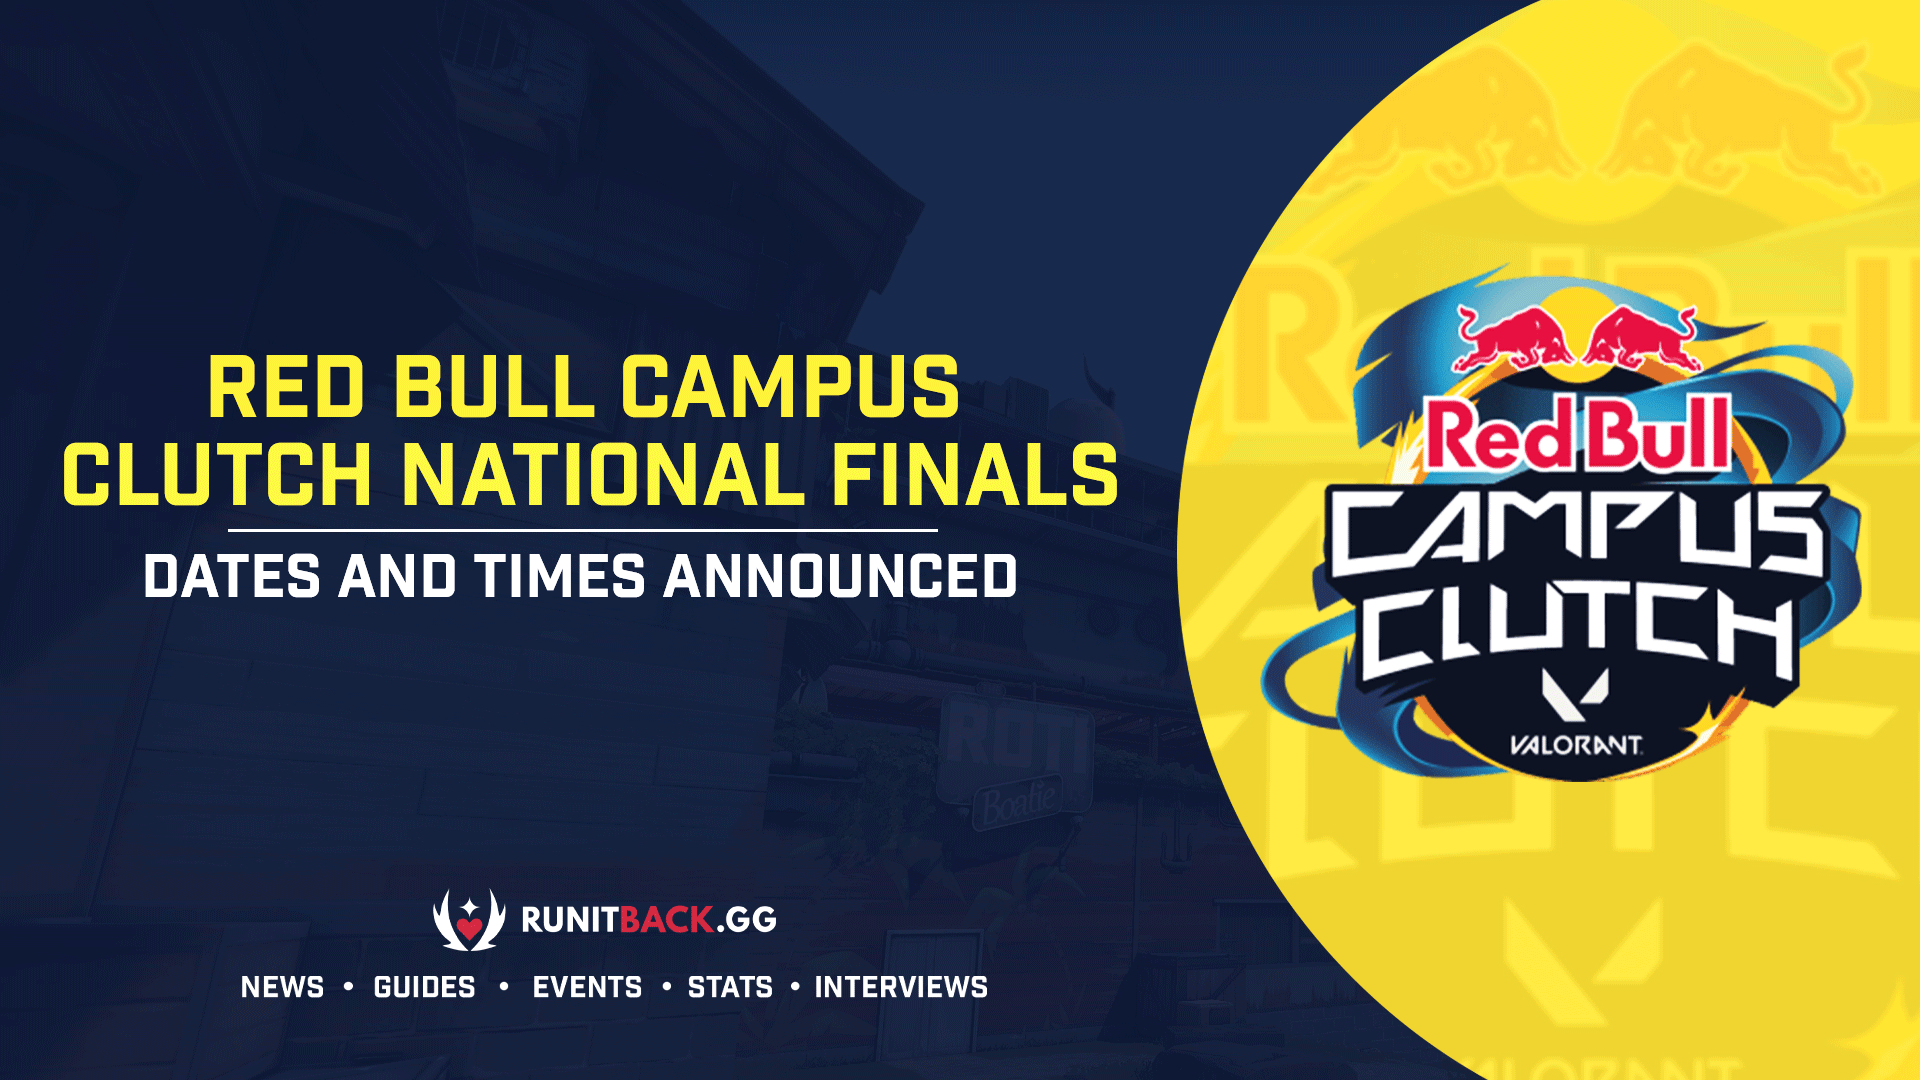 Red Bull announce dates and times for the Red Bull Campus Clutch National Finals